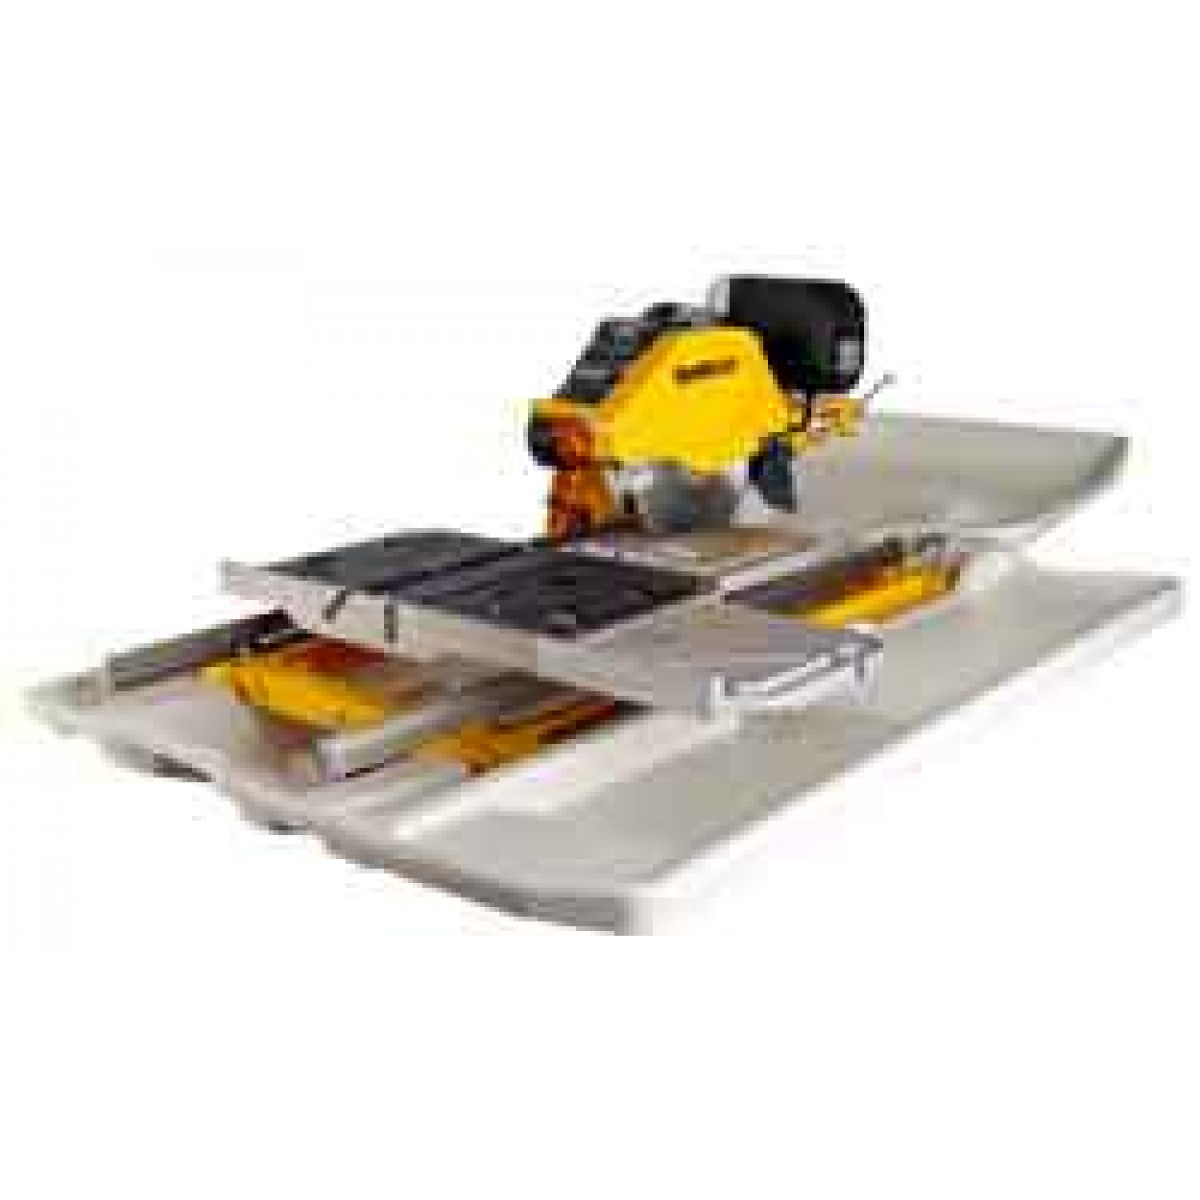 SawMaster SDT Wet Tile Saw - Dewalt wet saw pump